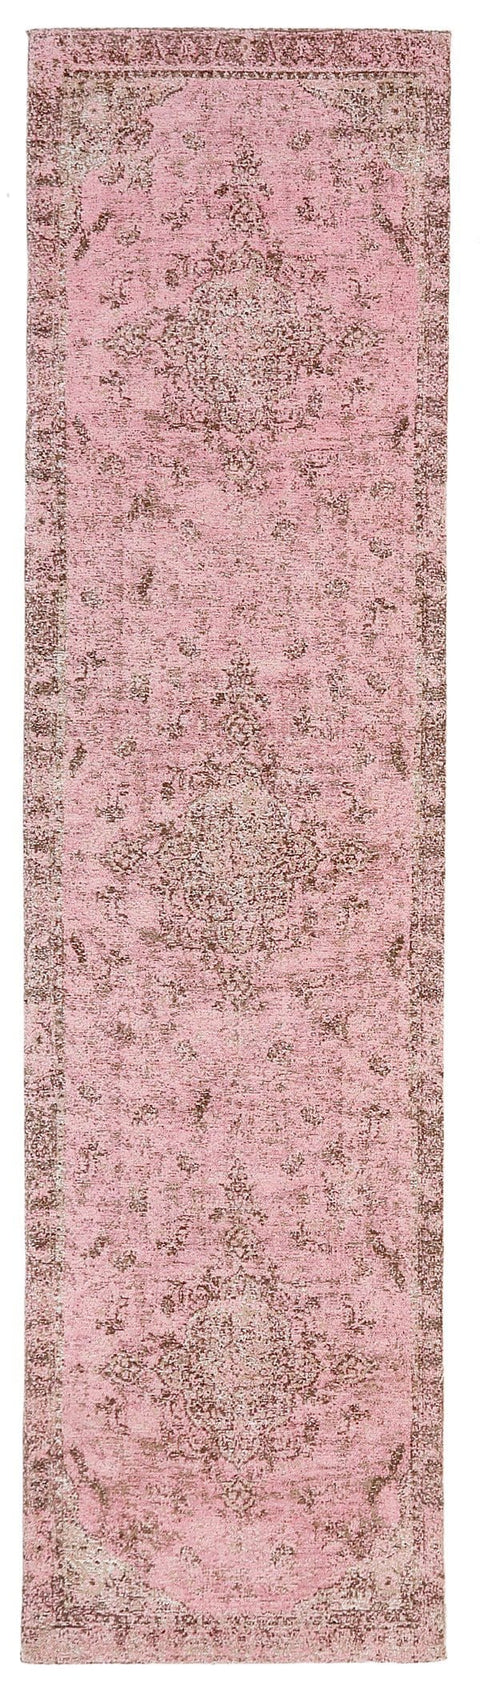 Sahara Turkish Style Pink Distressed Medallion Runner Rug